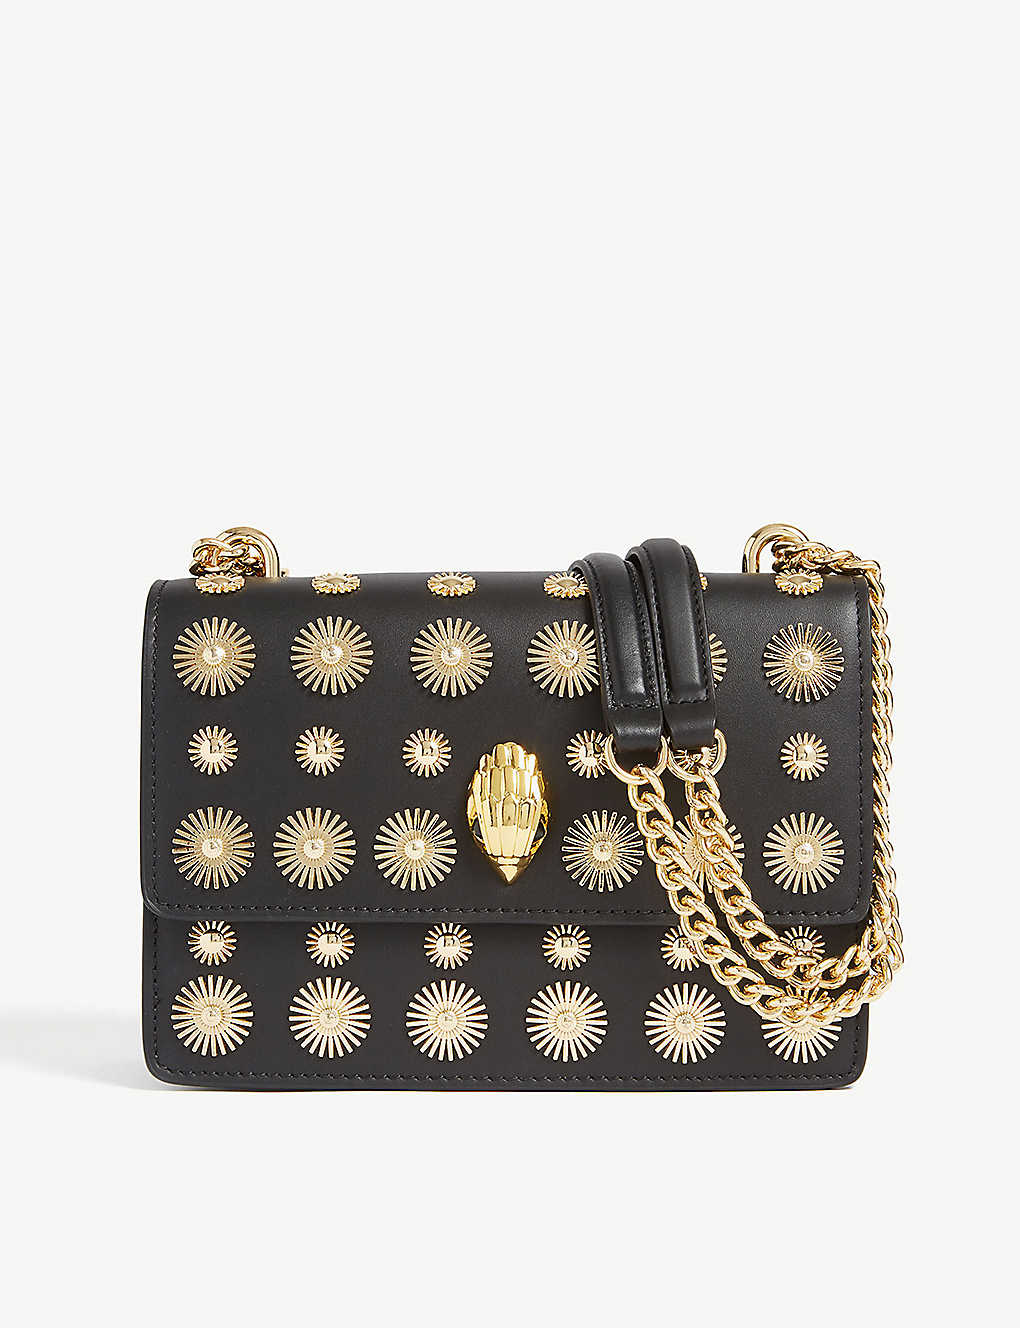 8ce3574ae7b2 KURT GEIGER LONDON - Shoreditch large coin leather cross-body bag ...